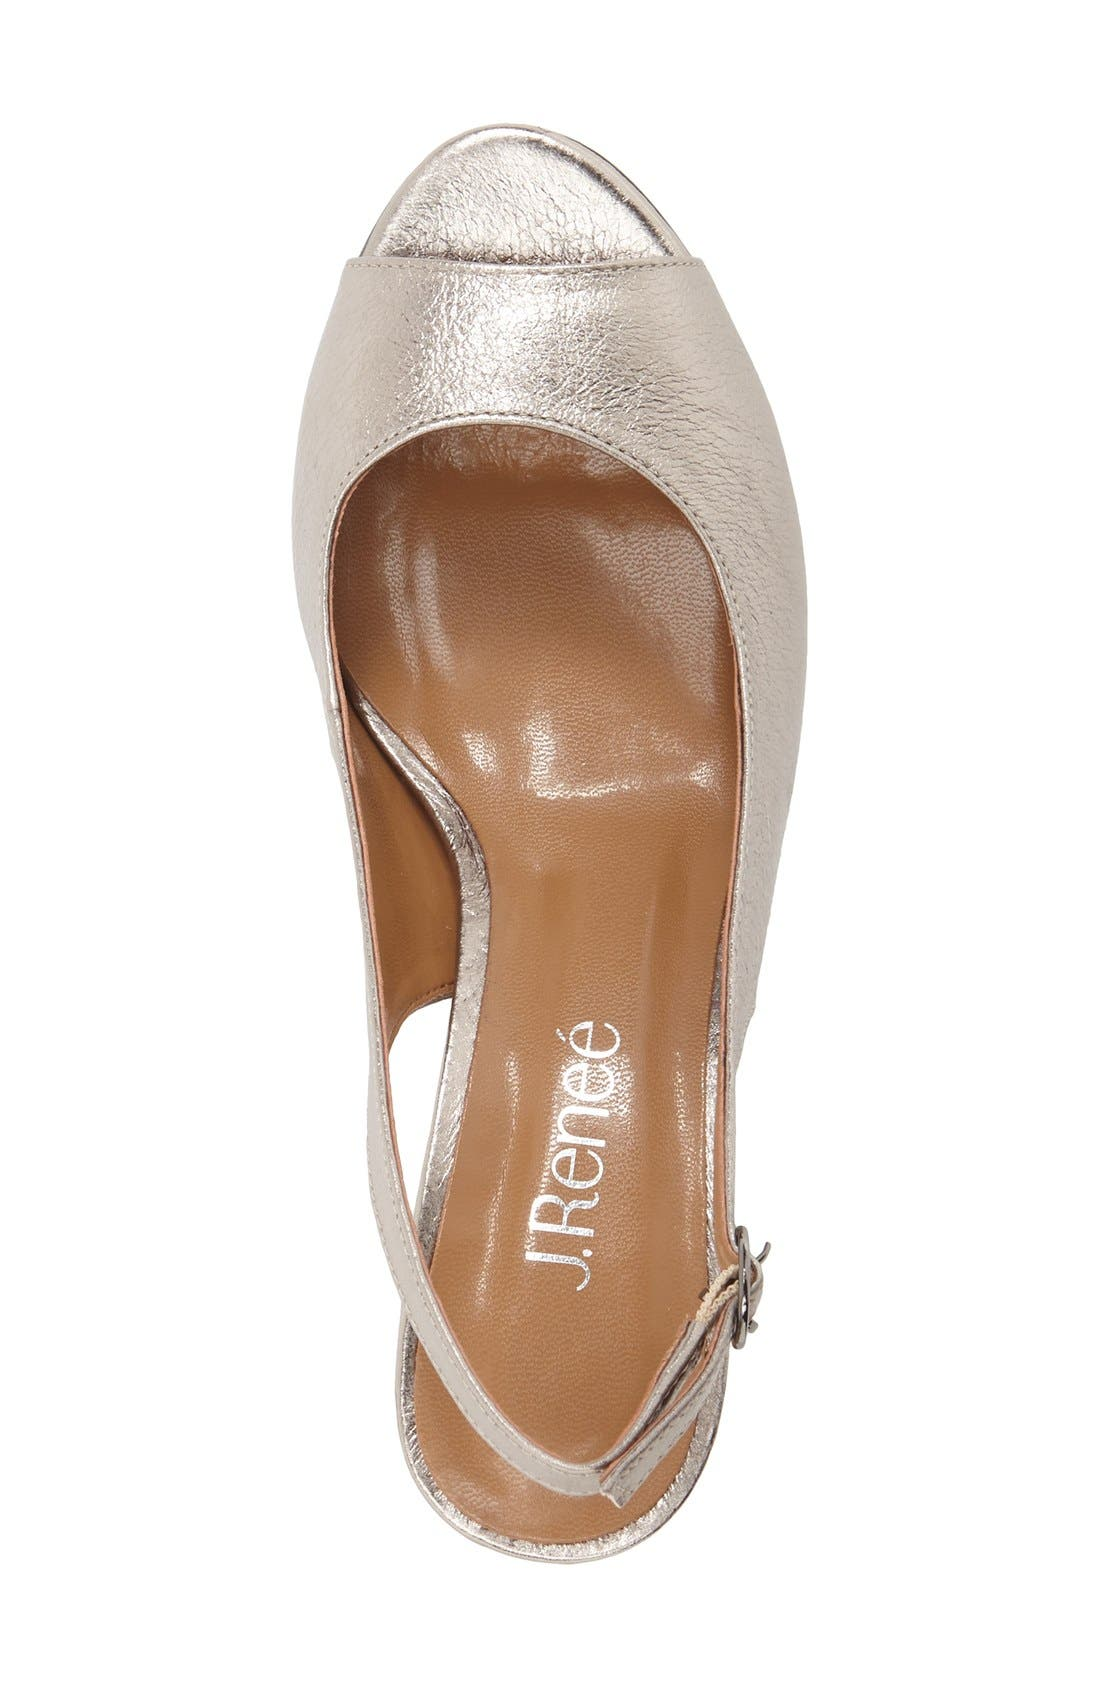 Alternate Image 3  - J. Reneé 'Gardenroad' Slingback Peep Toe Pump (Women)